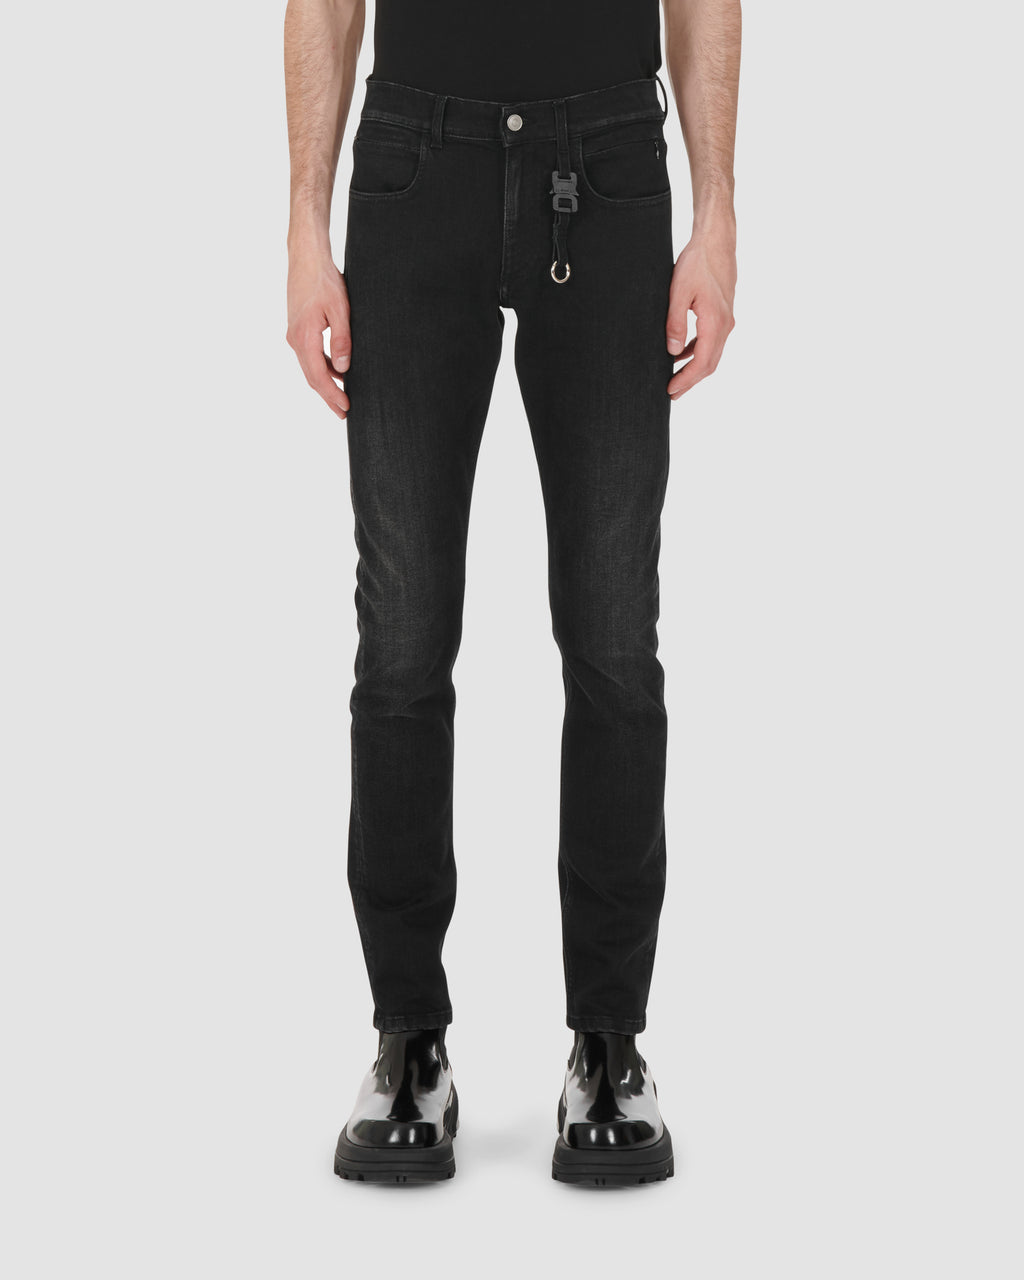 1017 ALYX 9SM | CLASSIC JEAN W NYLON BUCKLE | Pants | BLACK, Google Shopping, Man, MEN, Pants, S20, S20 Drop II, Trousers